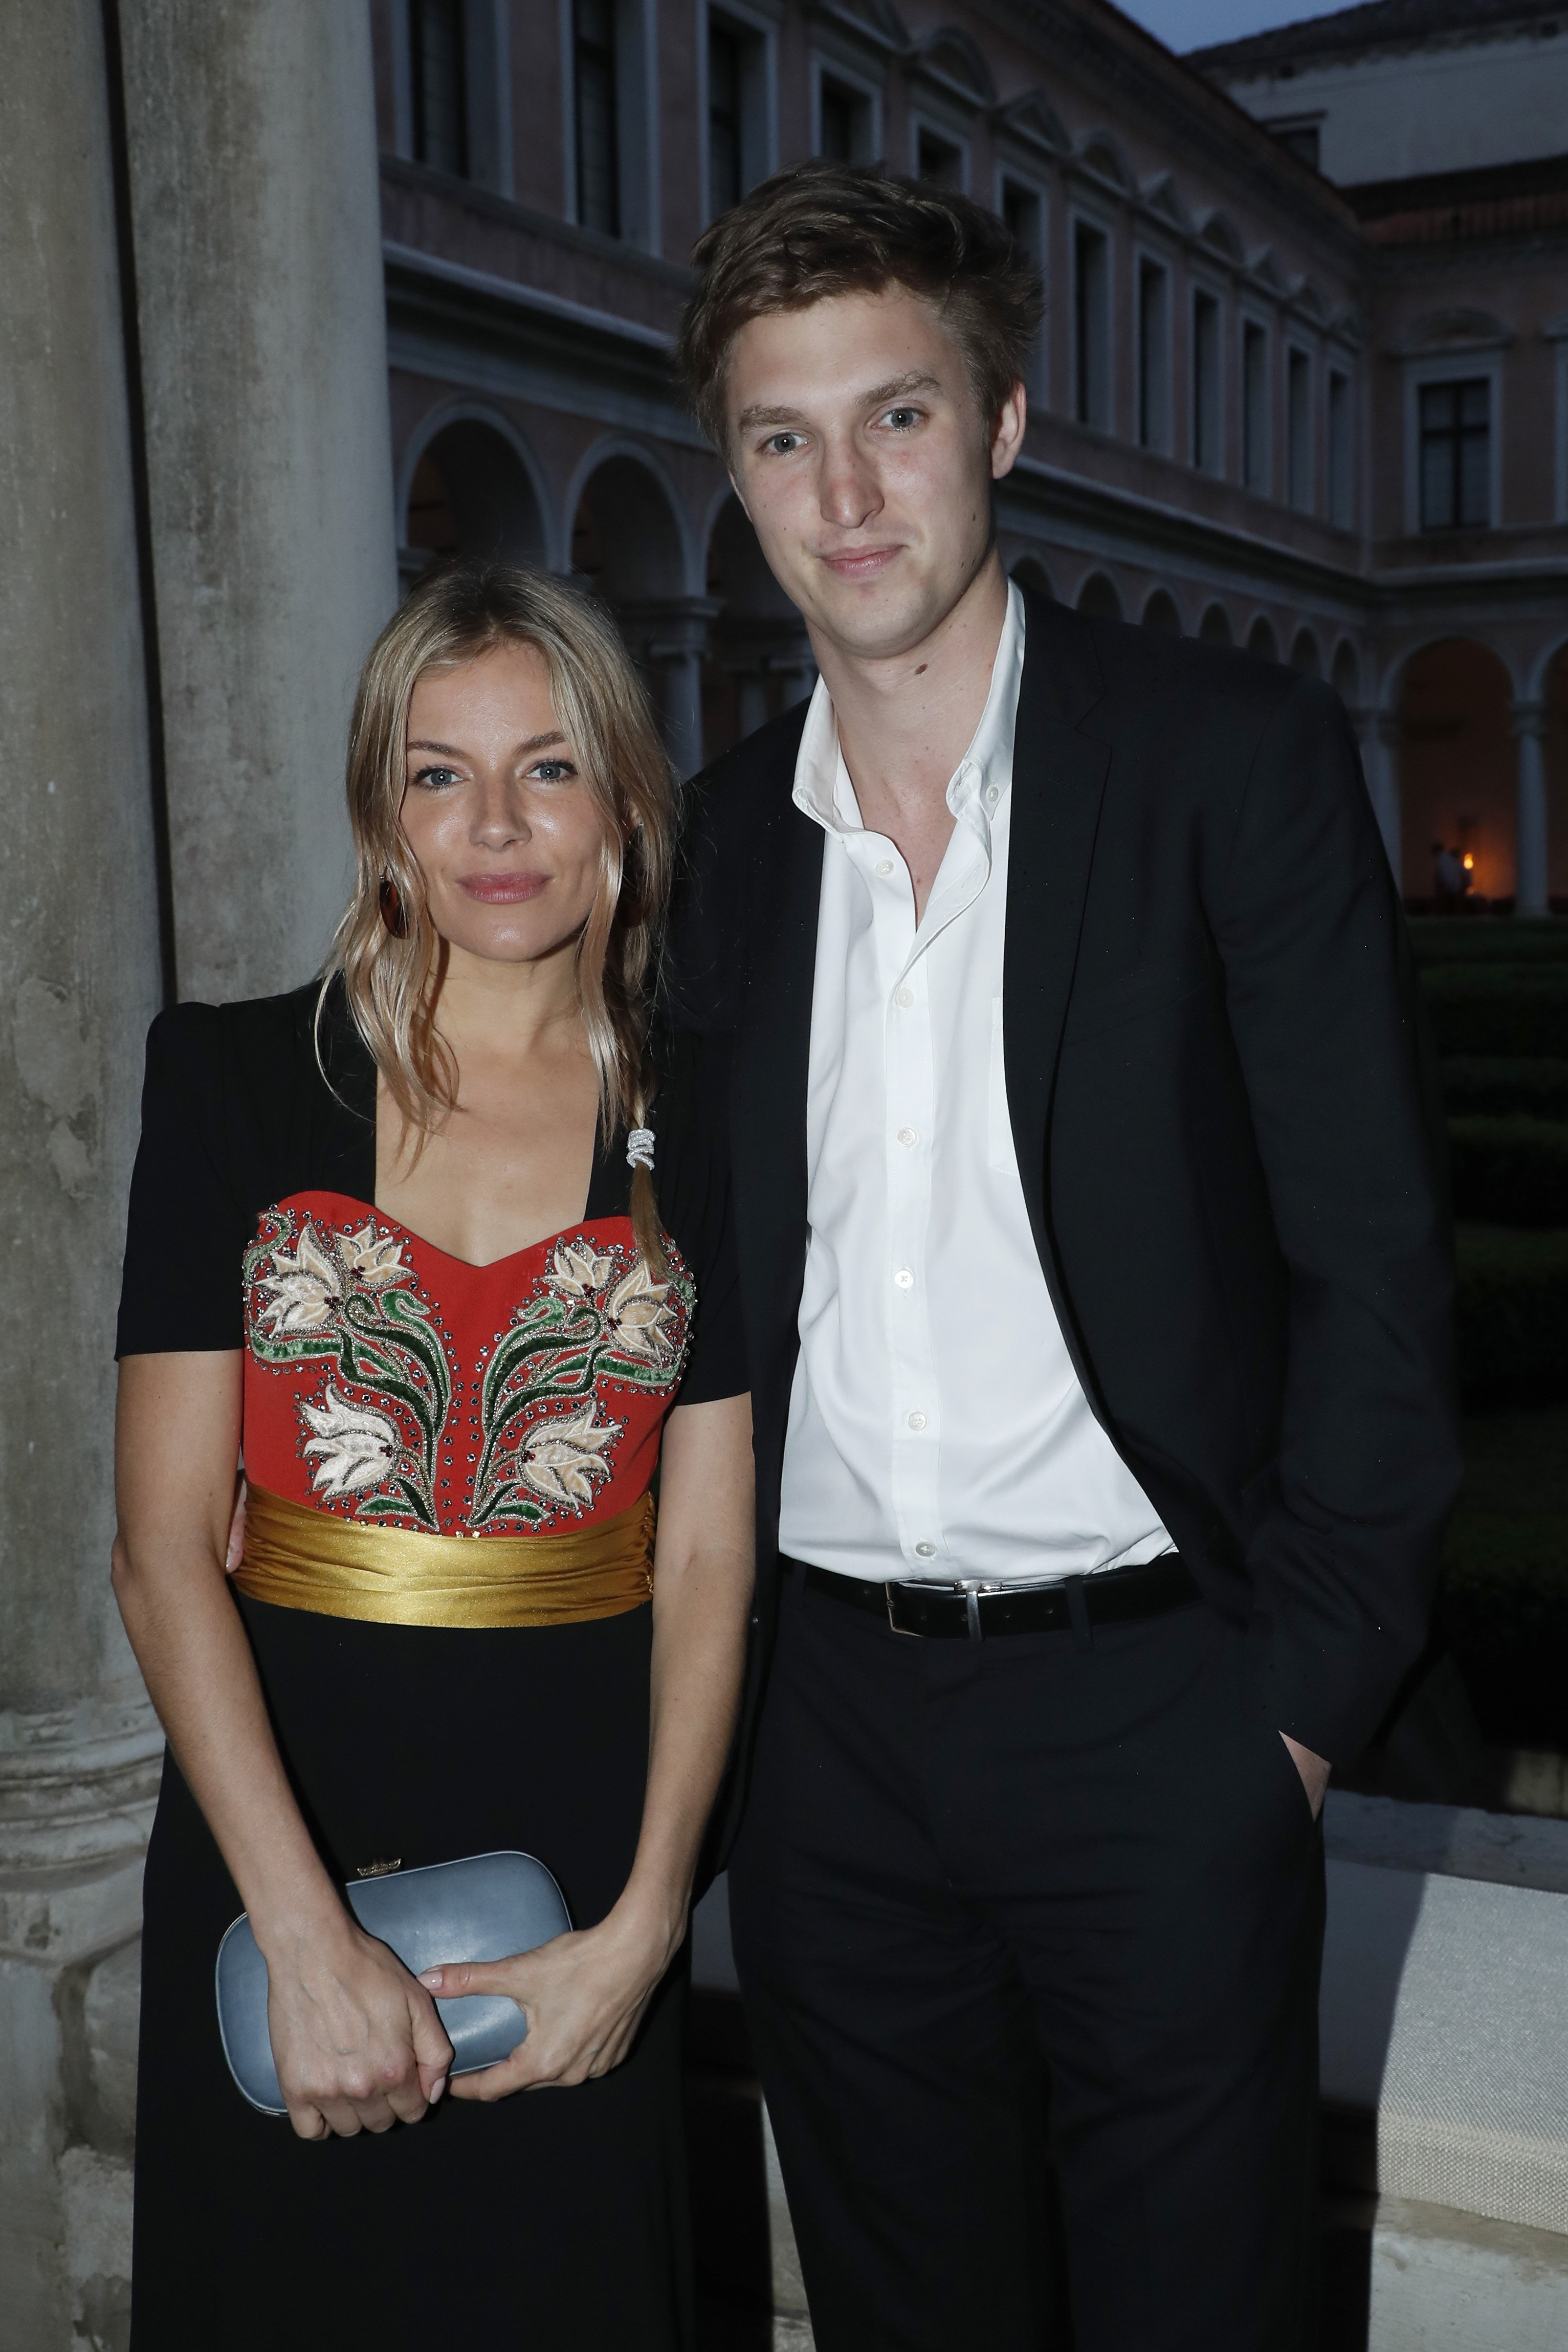 Sienna Miller and Lucas Zwirner attend the 58th International Art Biennale in Venice / Getty Images